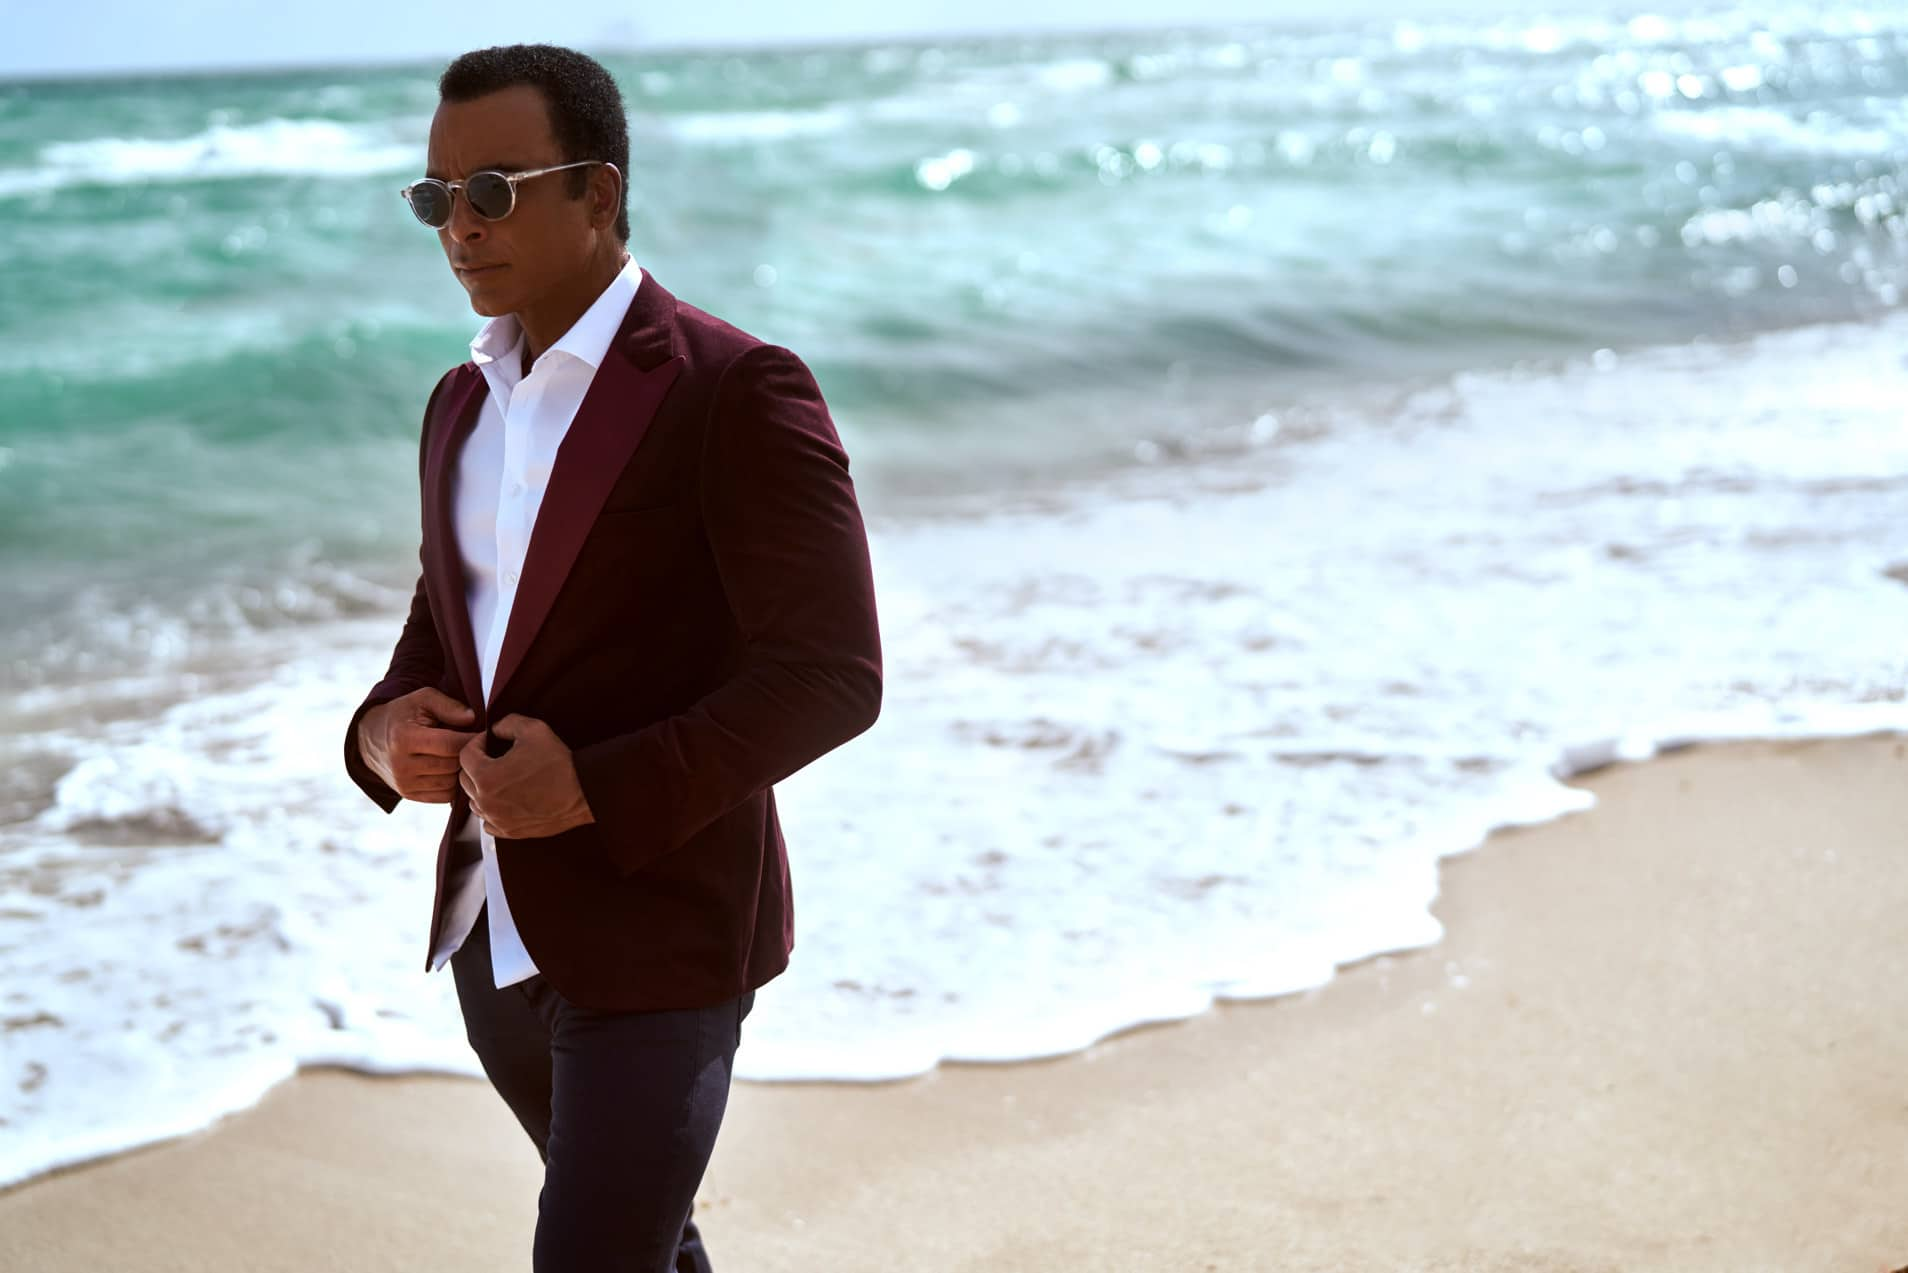 Jon Secada high res photo Pinecrest Gardens Brings Jazz Masters to Music Lovers' Homes with Virtual Concert Series to Help Feed Families Affected by the Pandemic